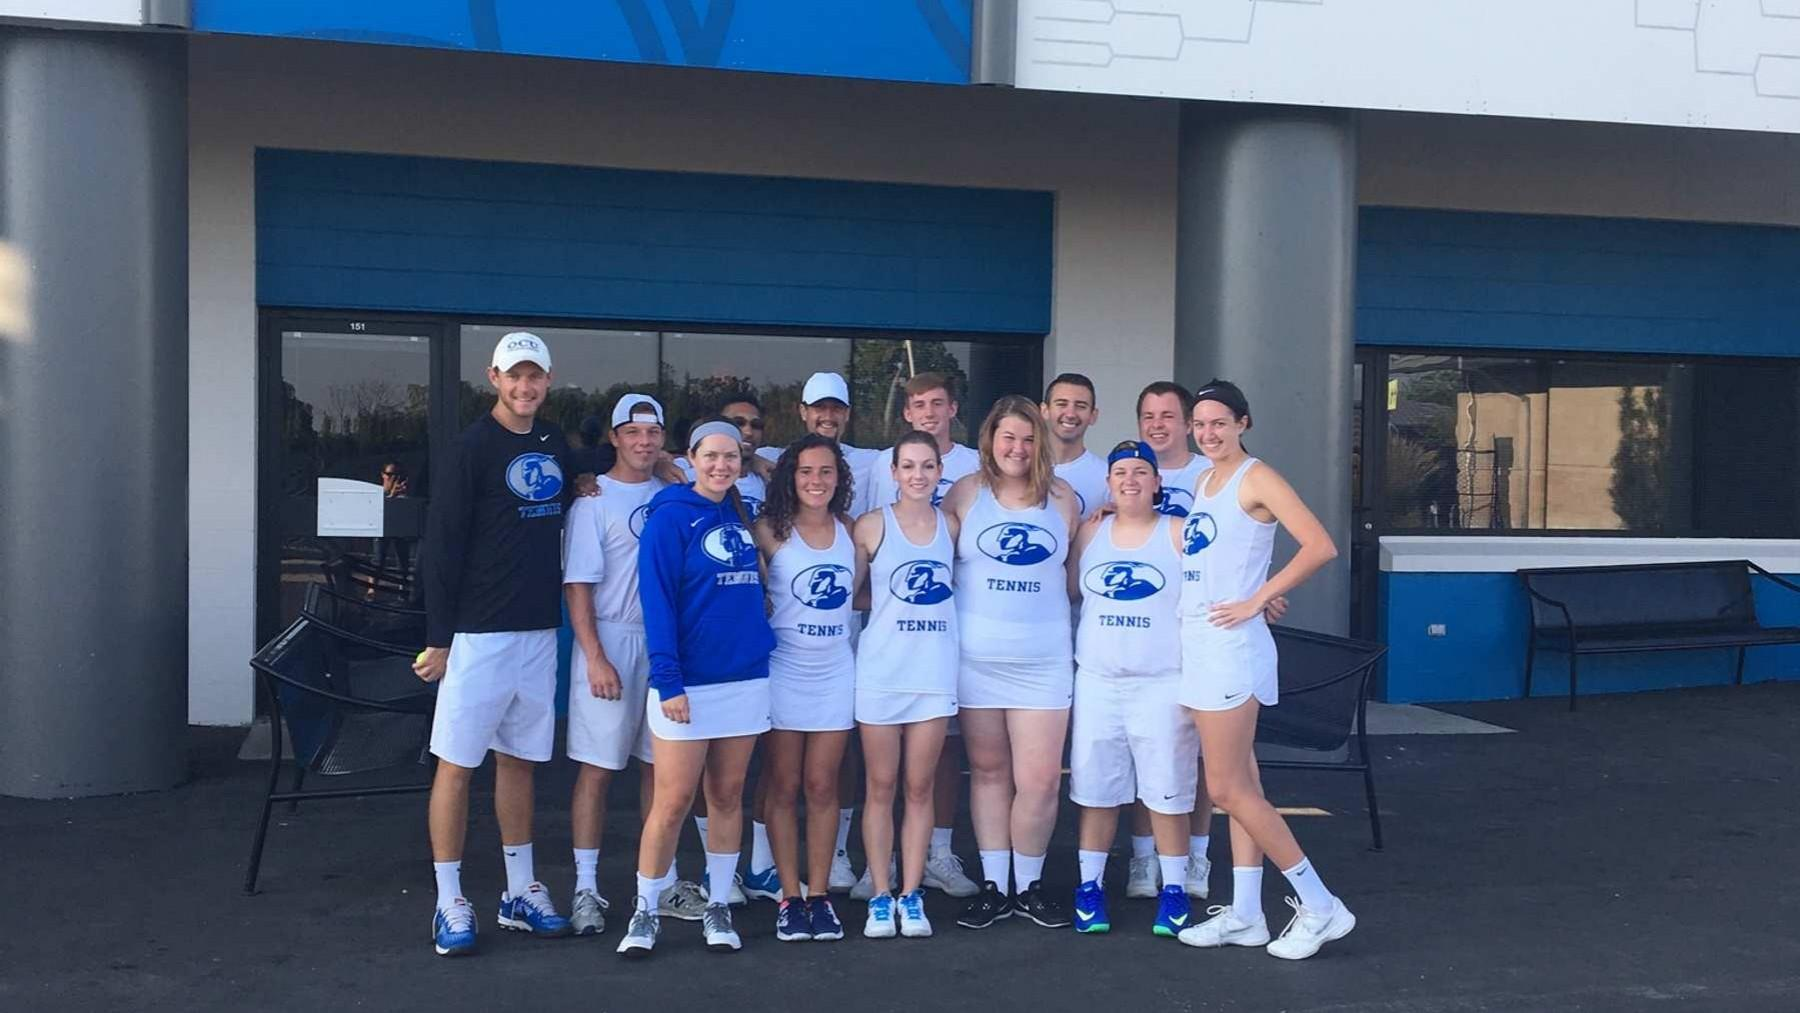 Tennis Program Competes At Lindner Center, Defeats OUL